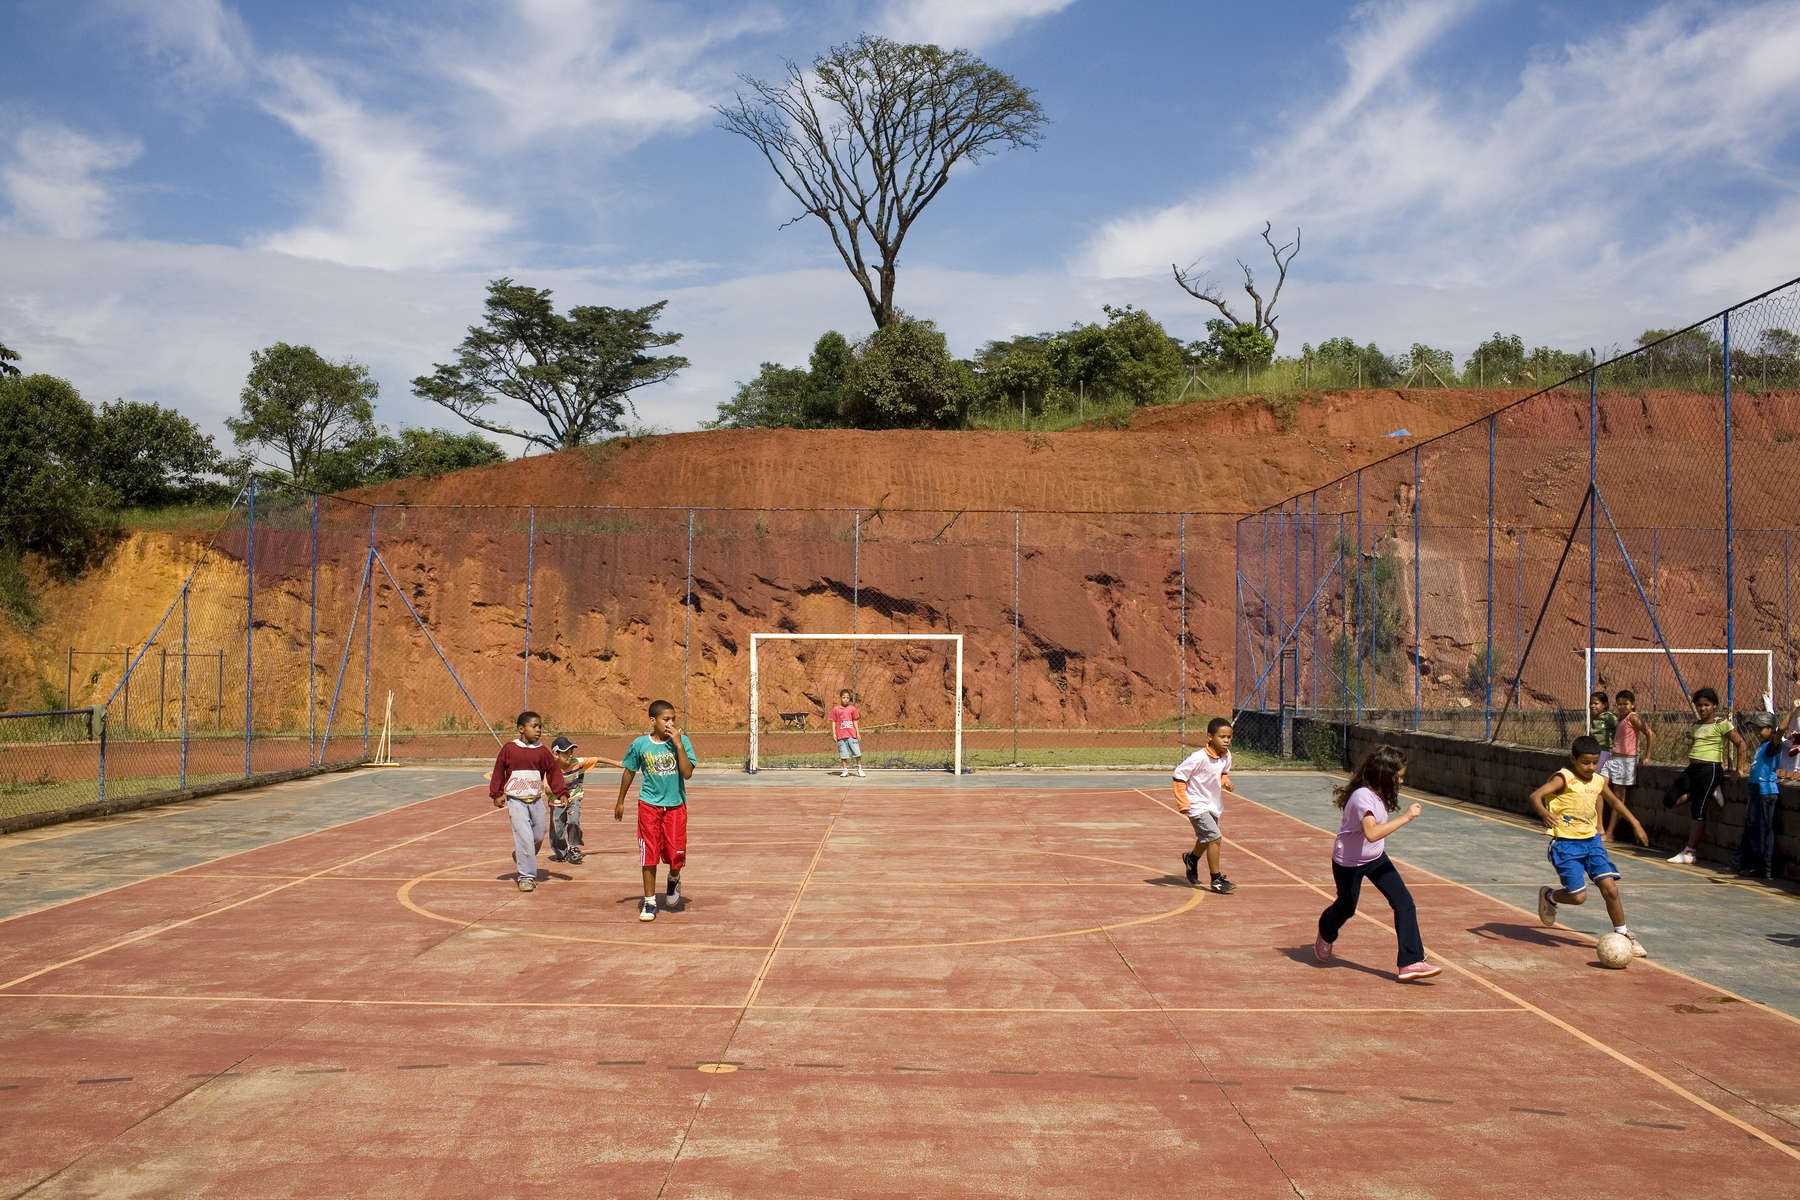 Children play a game of football on the all weather pitch at the EPROCAD centre in Sao Paolo. Football is used to transform childrem with low self esteem and negative perceptions into critical proactive citizens.In disaster areas, war zones and urban wastelands, football keeps humanity alive. It brings nations together and promotes unity. It encourages equality and generates pride and self-belief. It has the power to heal and to help, to motivate, to give freedom to dreams and empower a generation. There are millions of people playing the game or helping it to flourish who find that football brings a positive dimension to their lives.Away from the billionaire owned clubs with it's multi-million dollar players, Football's Hidden Story is a series of emotive human interest photographs showing the positive impact football has had at grassroot level on individuals and communities all around the world.